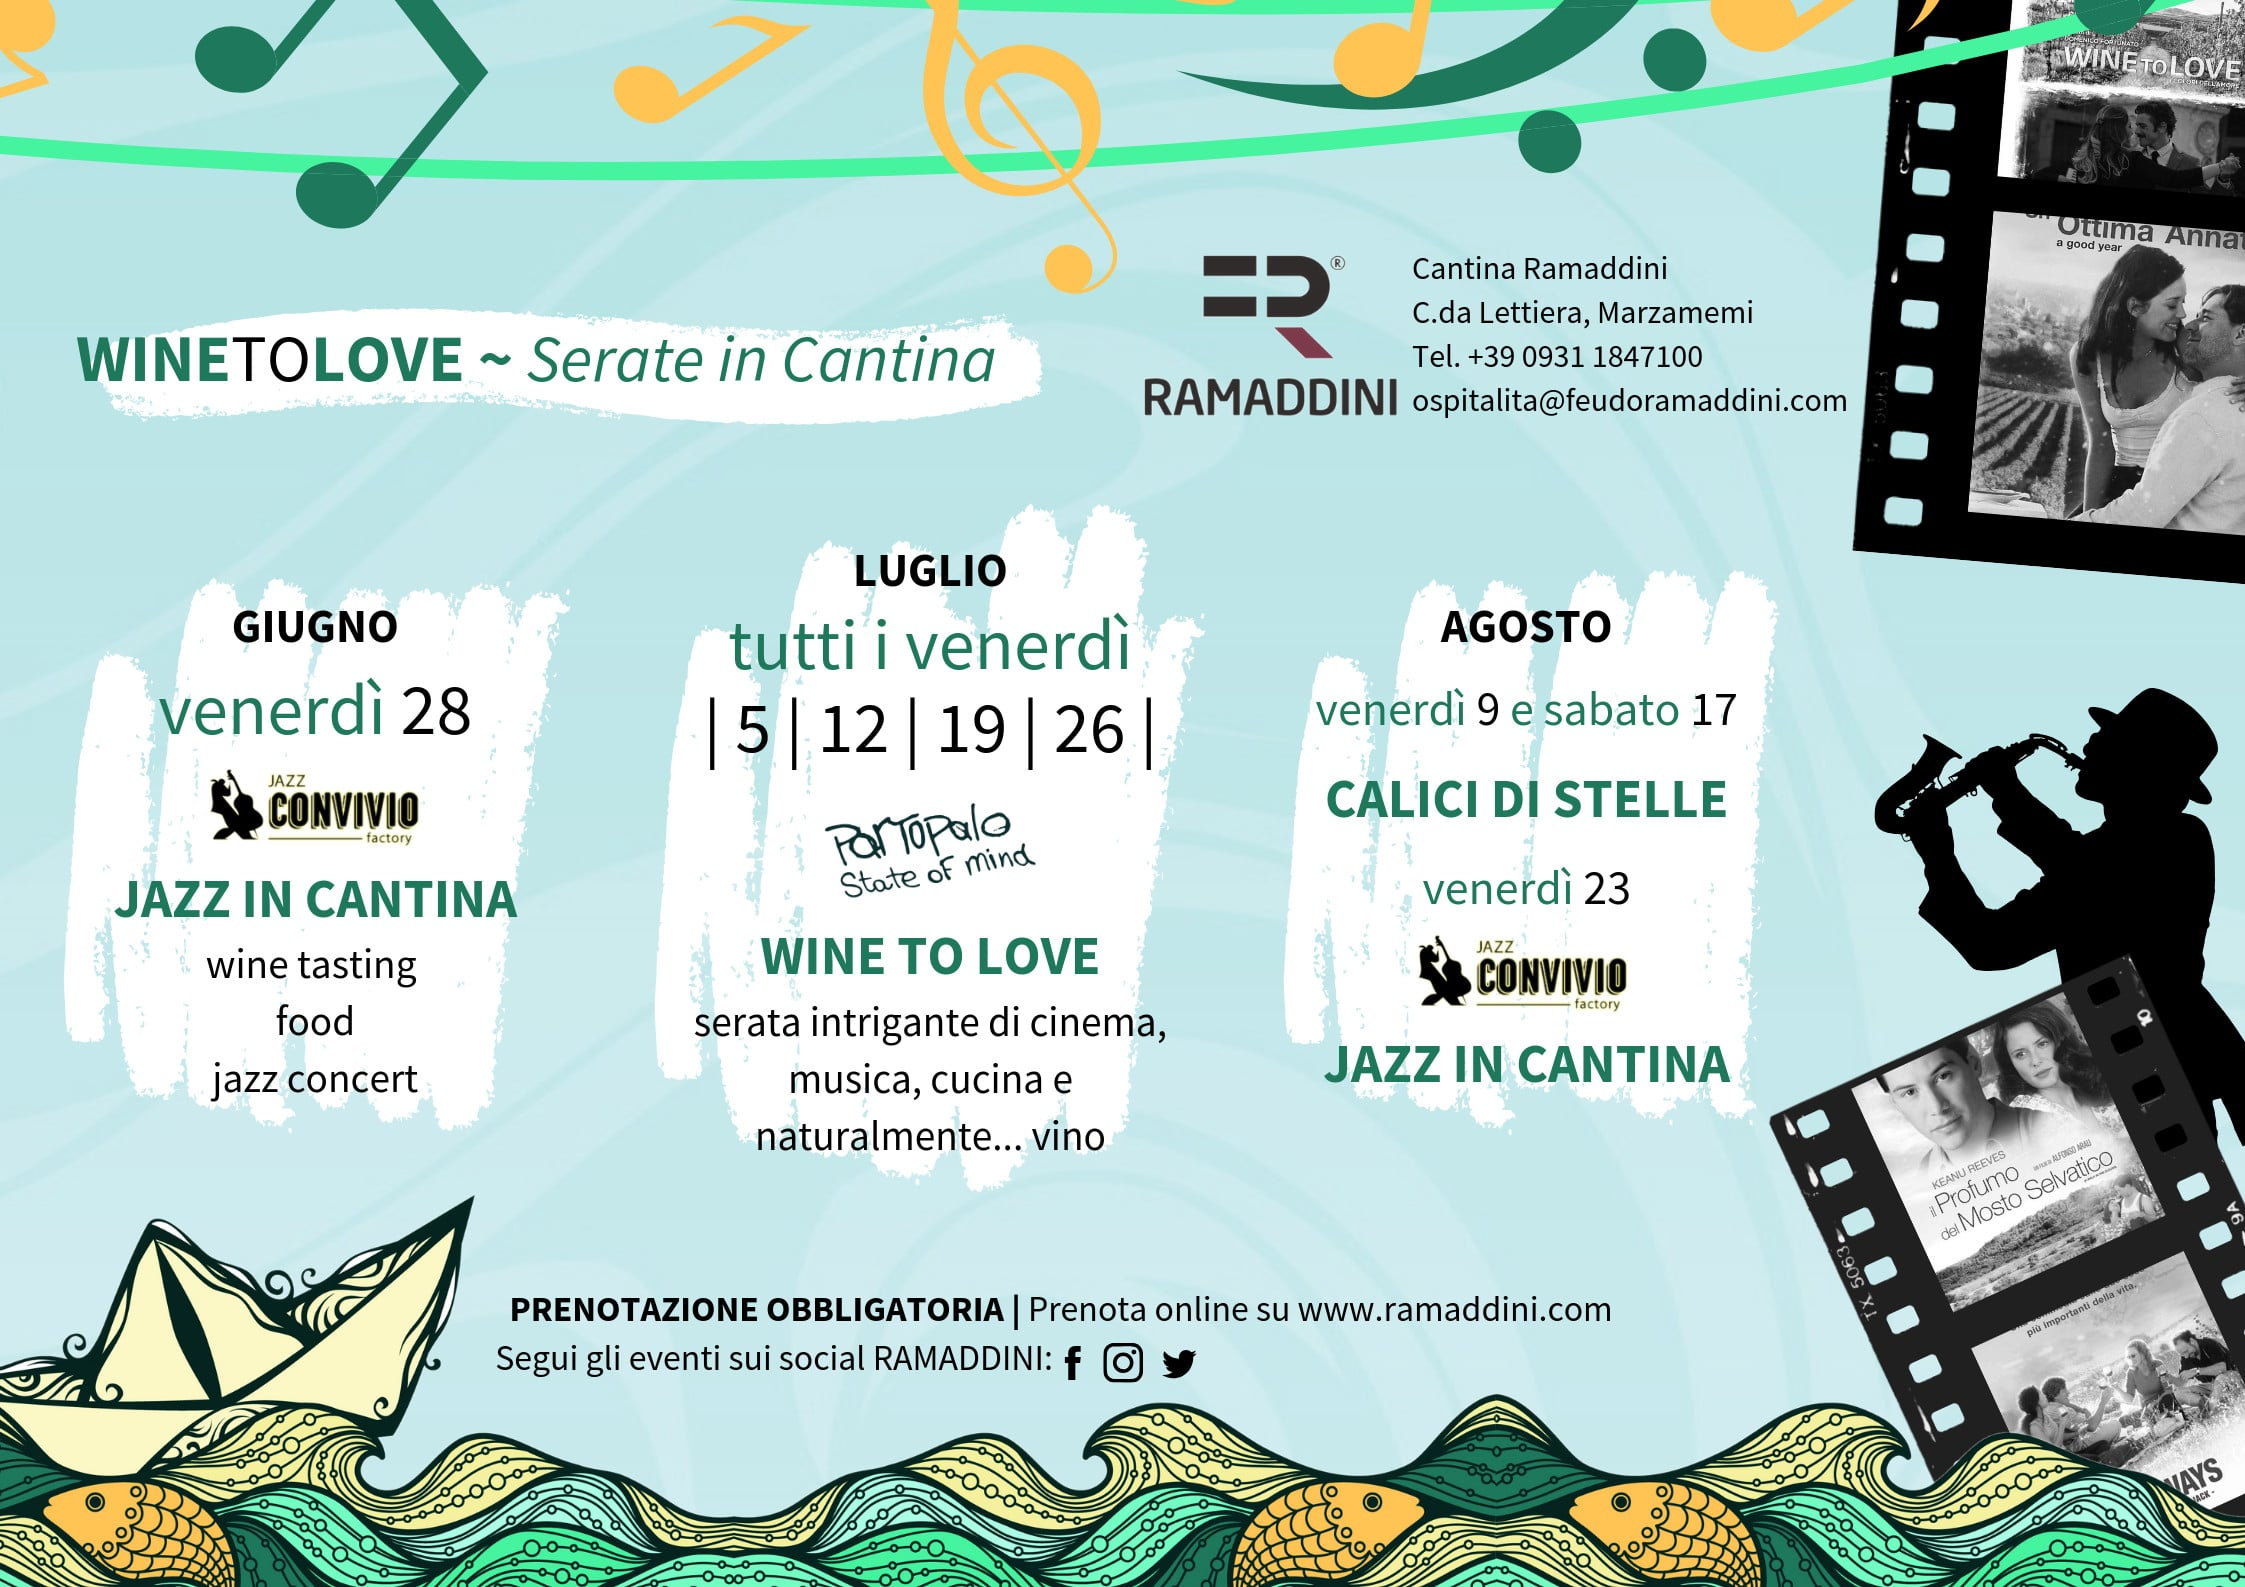 WINE TO LOVE – SERATE IN CANTINA RAMADDINI